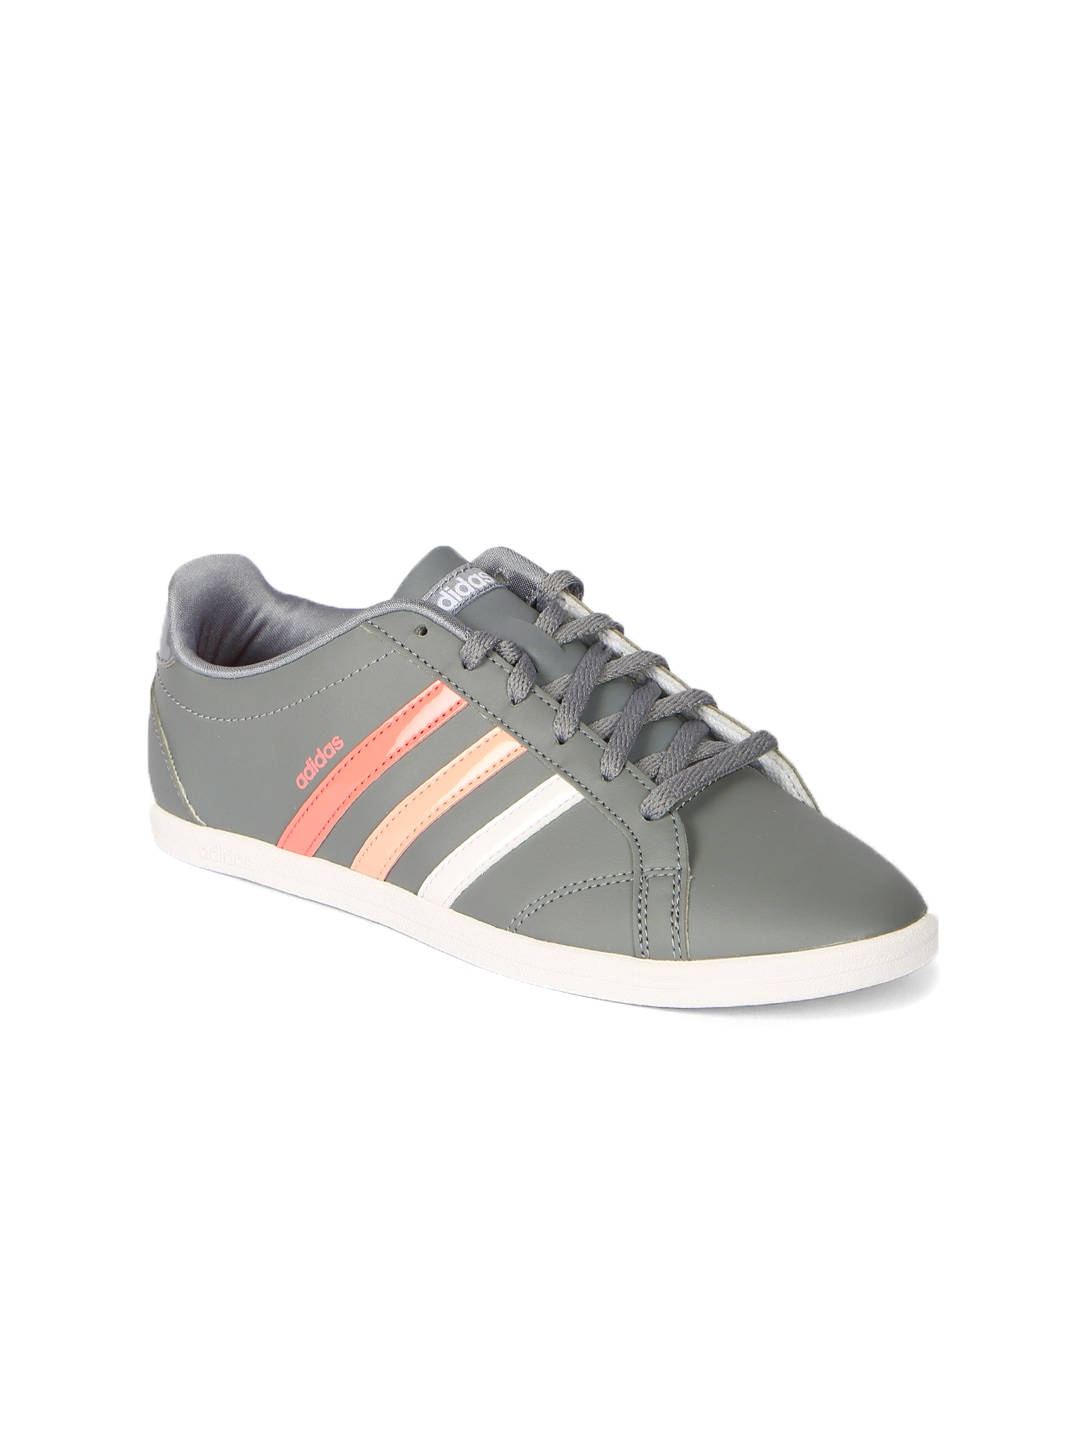 Adidas neo aw4756 Women Grey Coneo Qt Sneakers - Best Price in ... 9d427bd8e3